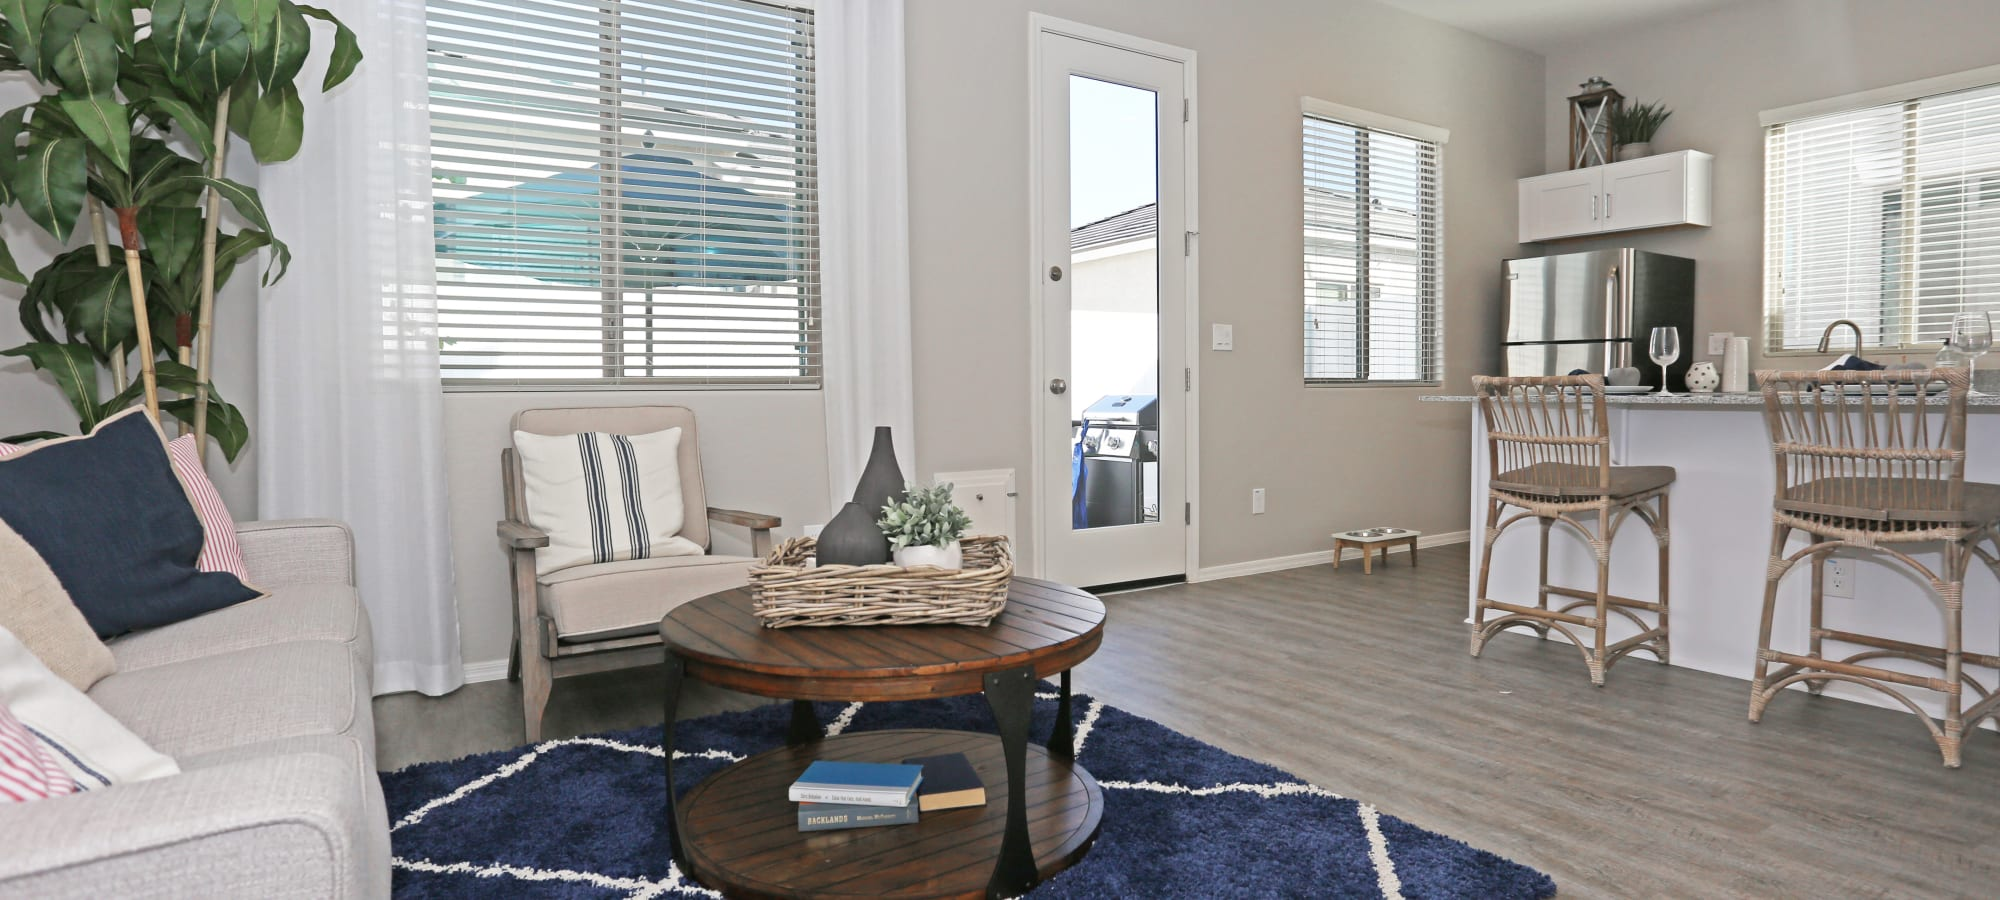 Comfortable living room in a model home at Christopher Todd Communities On Happy Valley in Peoria, Arizona